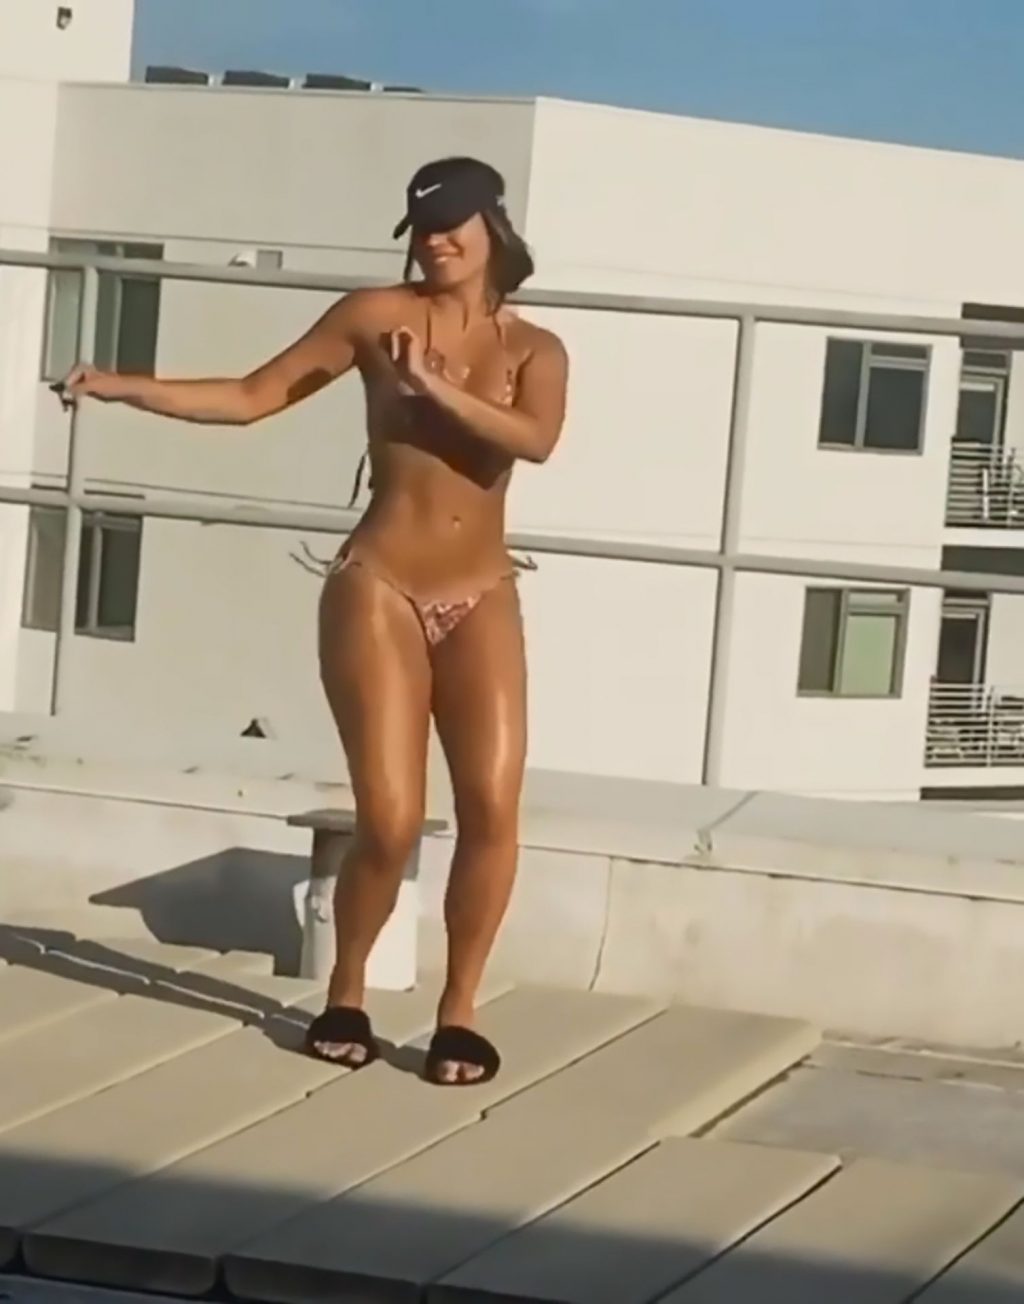 Lele Pons Dances Salsa on the Roof (12 Pics + Video)